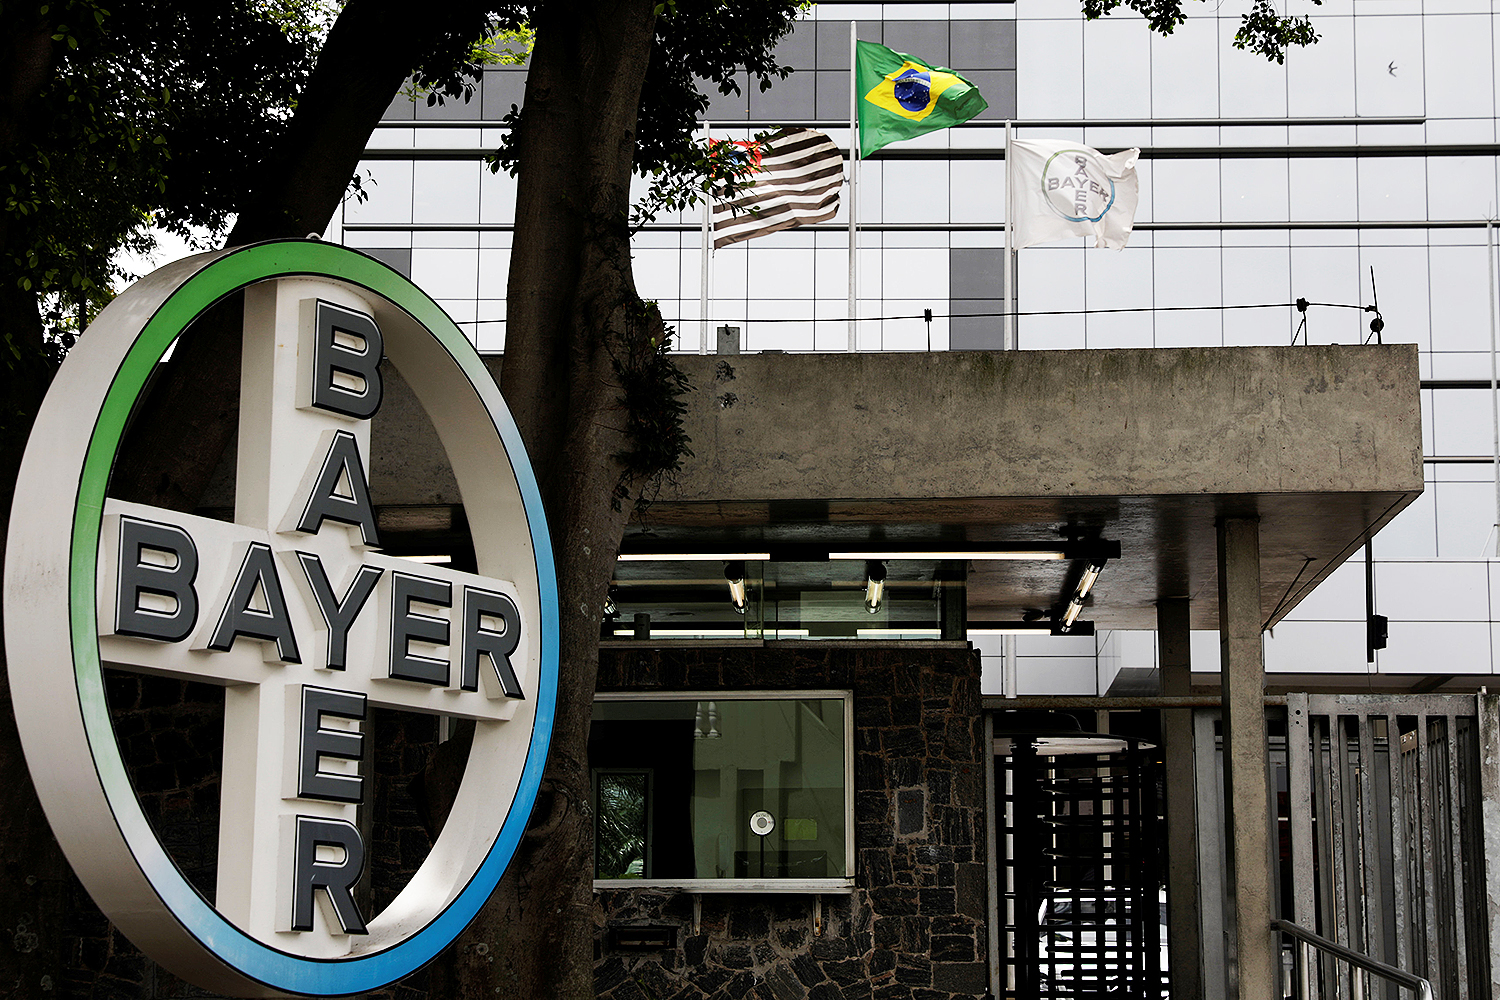 The Brazilian national flag is seen next to Bayer's flag in front of Bayer headquarters in Sao Paulo